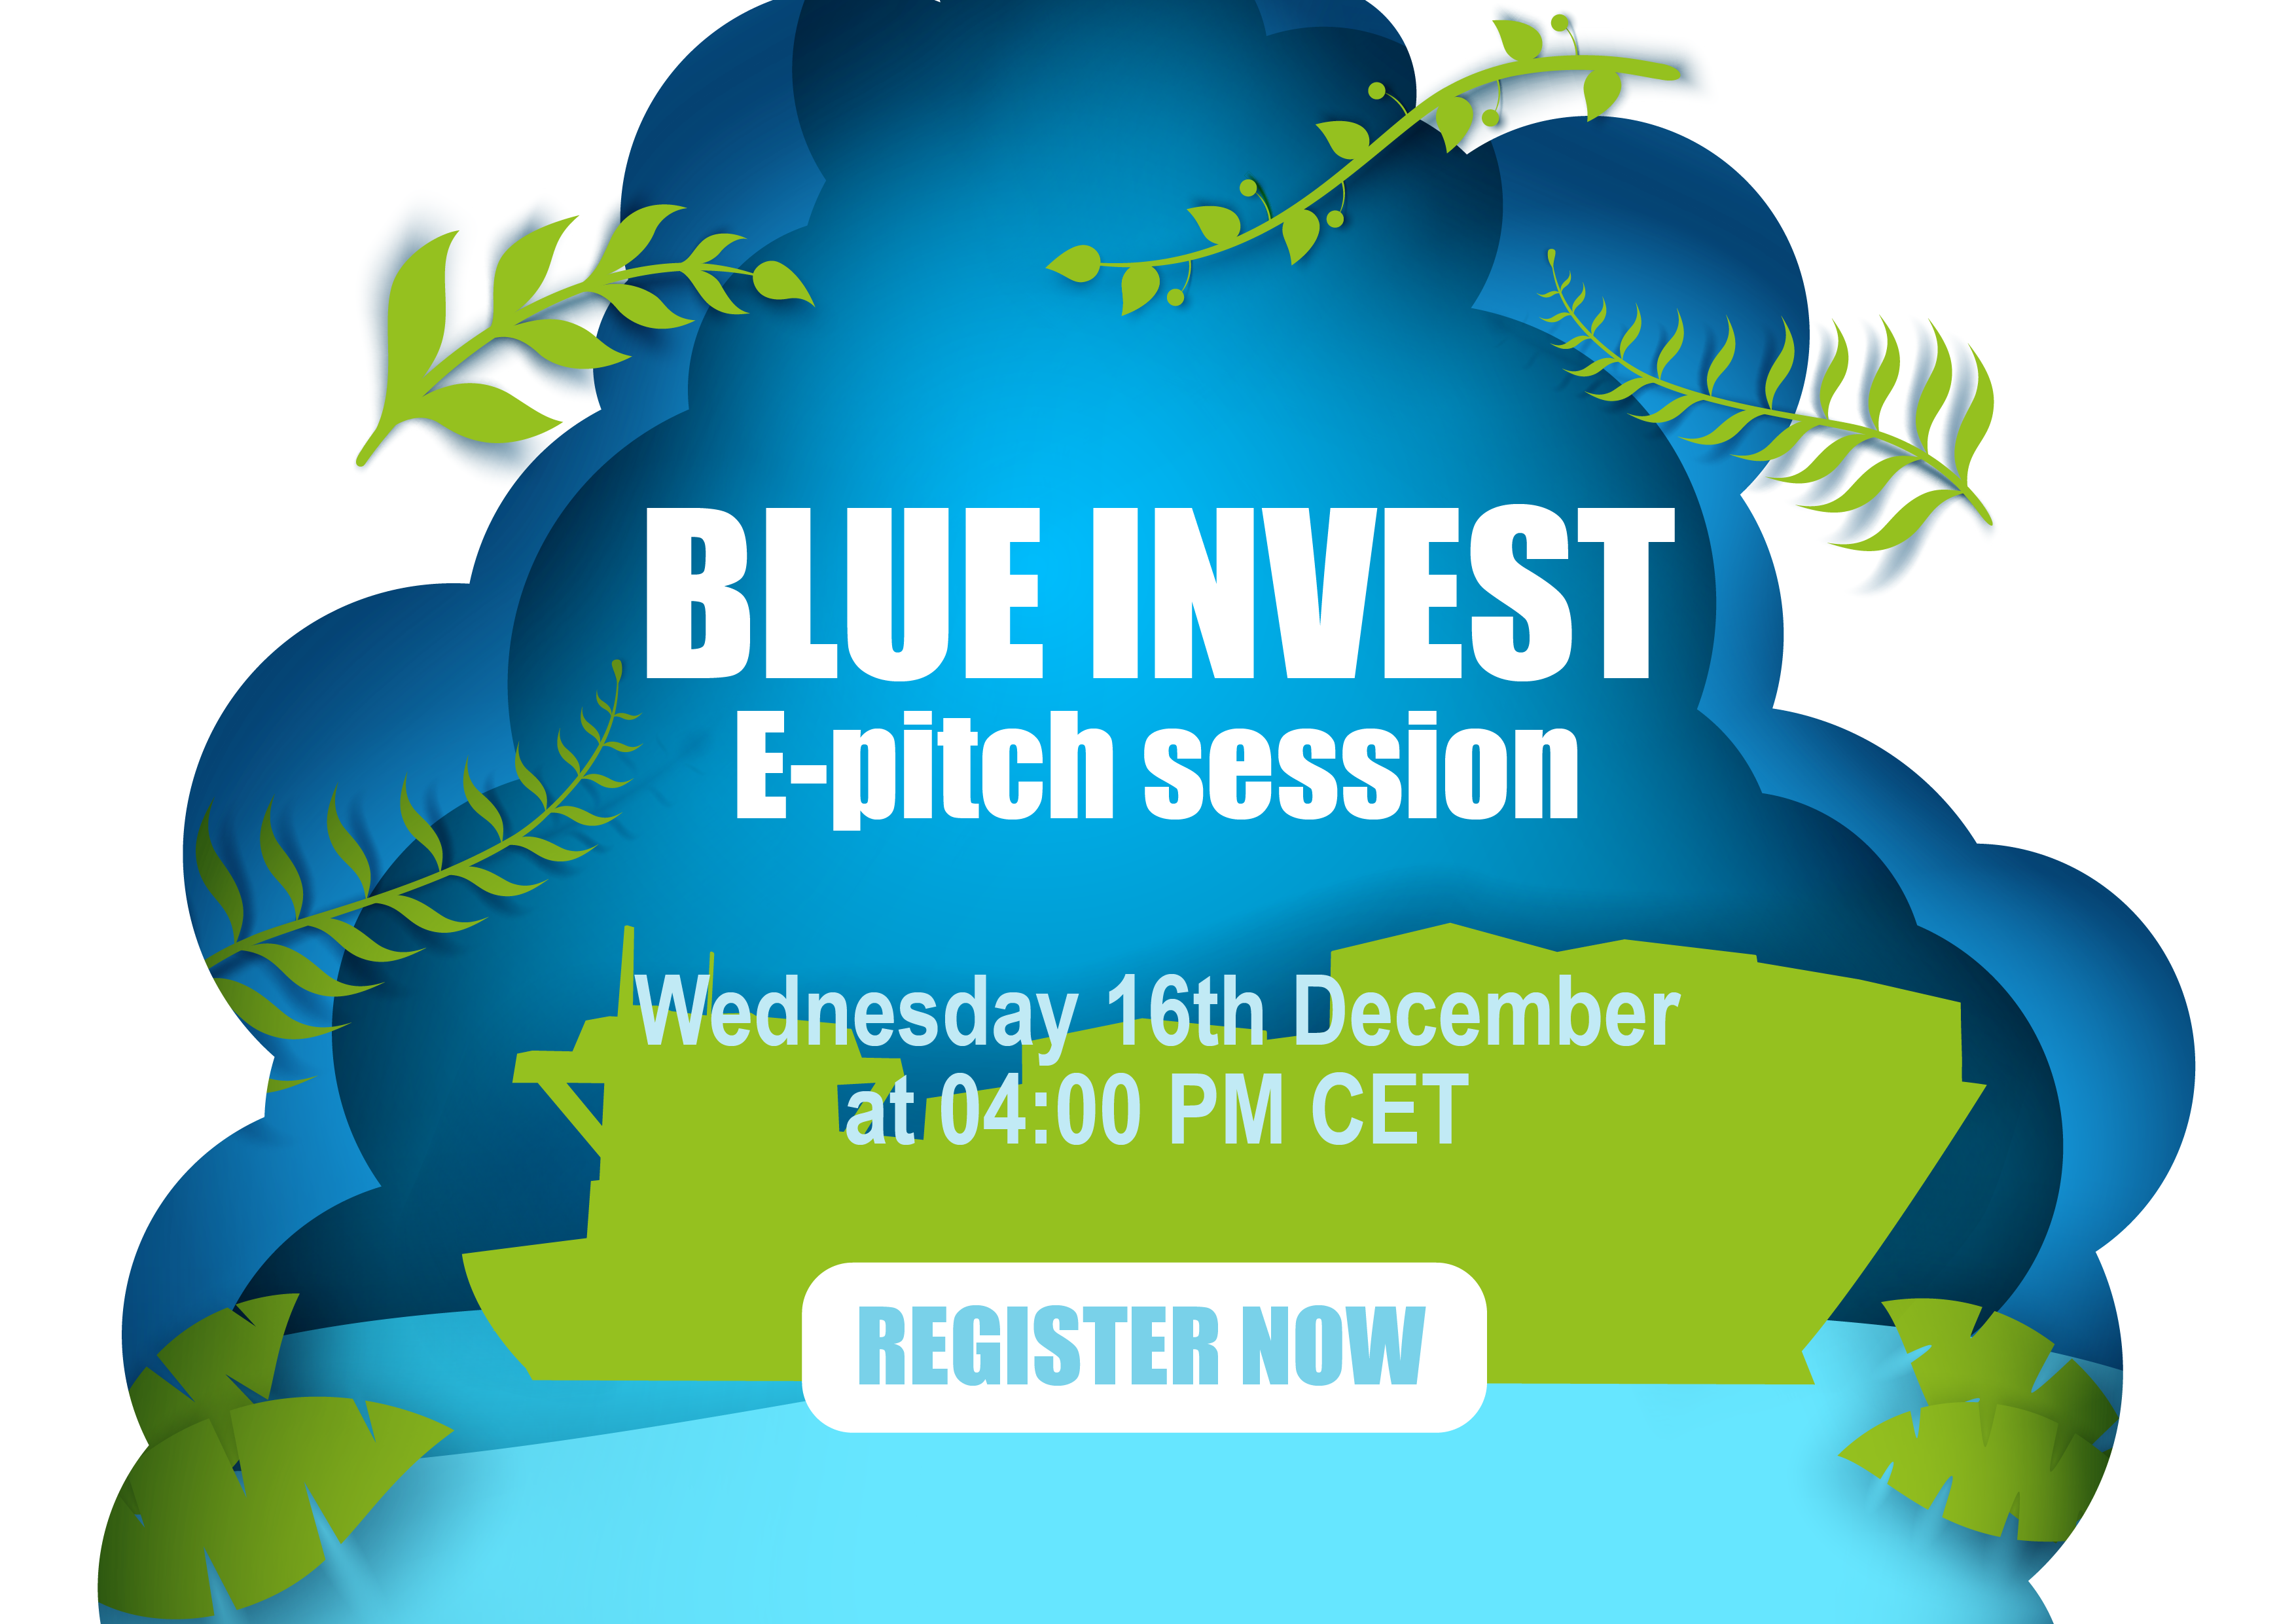 BlueInvest and EIPP join forces and will be introducing blue renewable energy production solutions next 16th of December at 4:00 PM CET